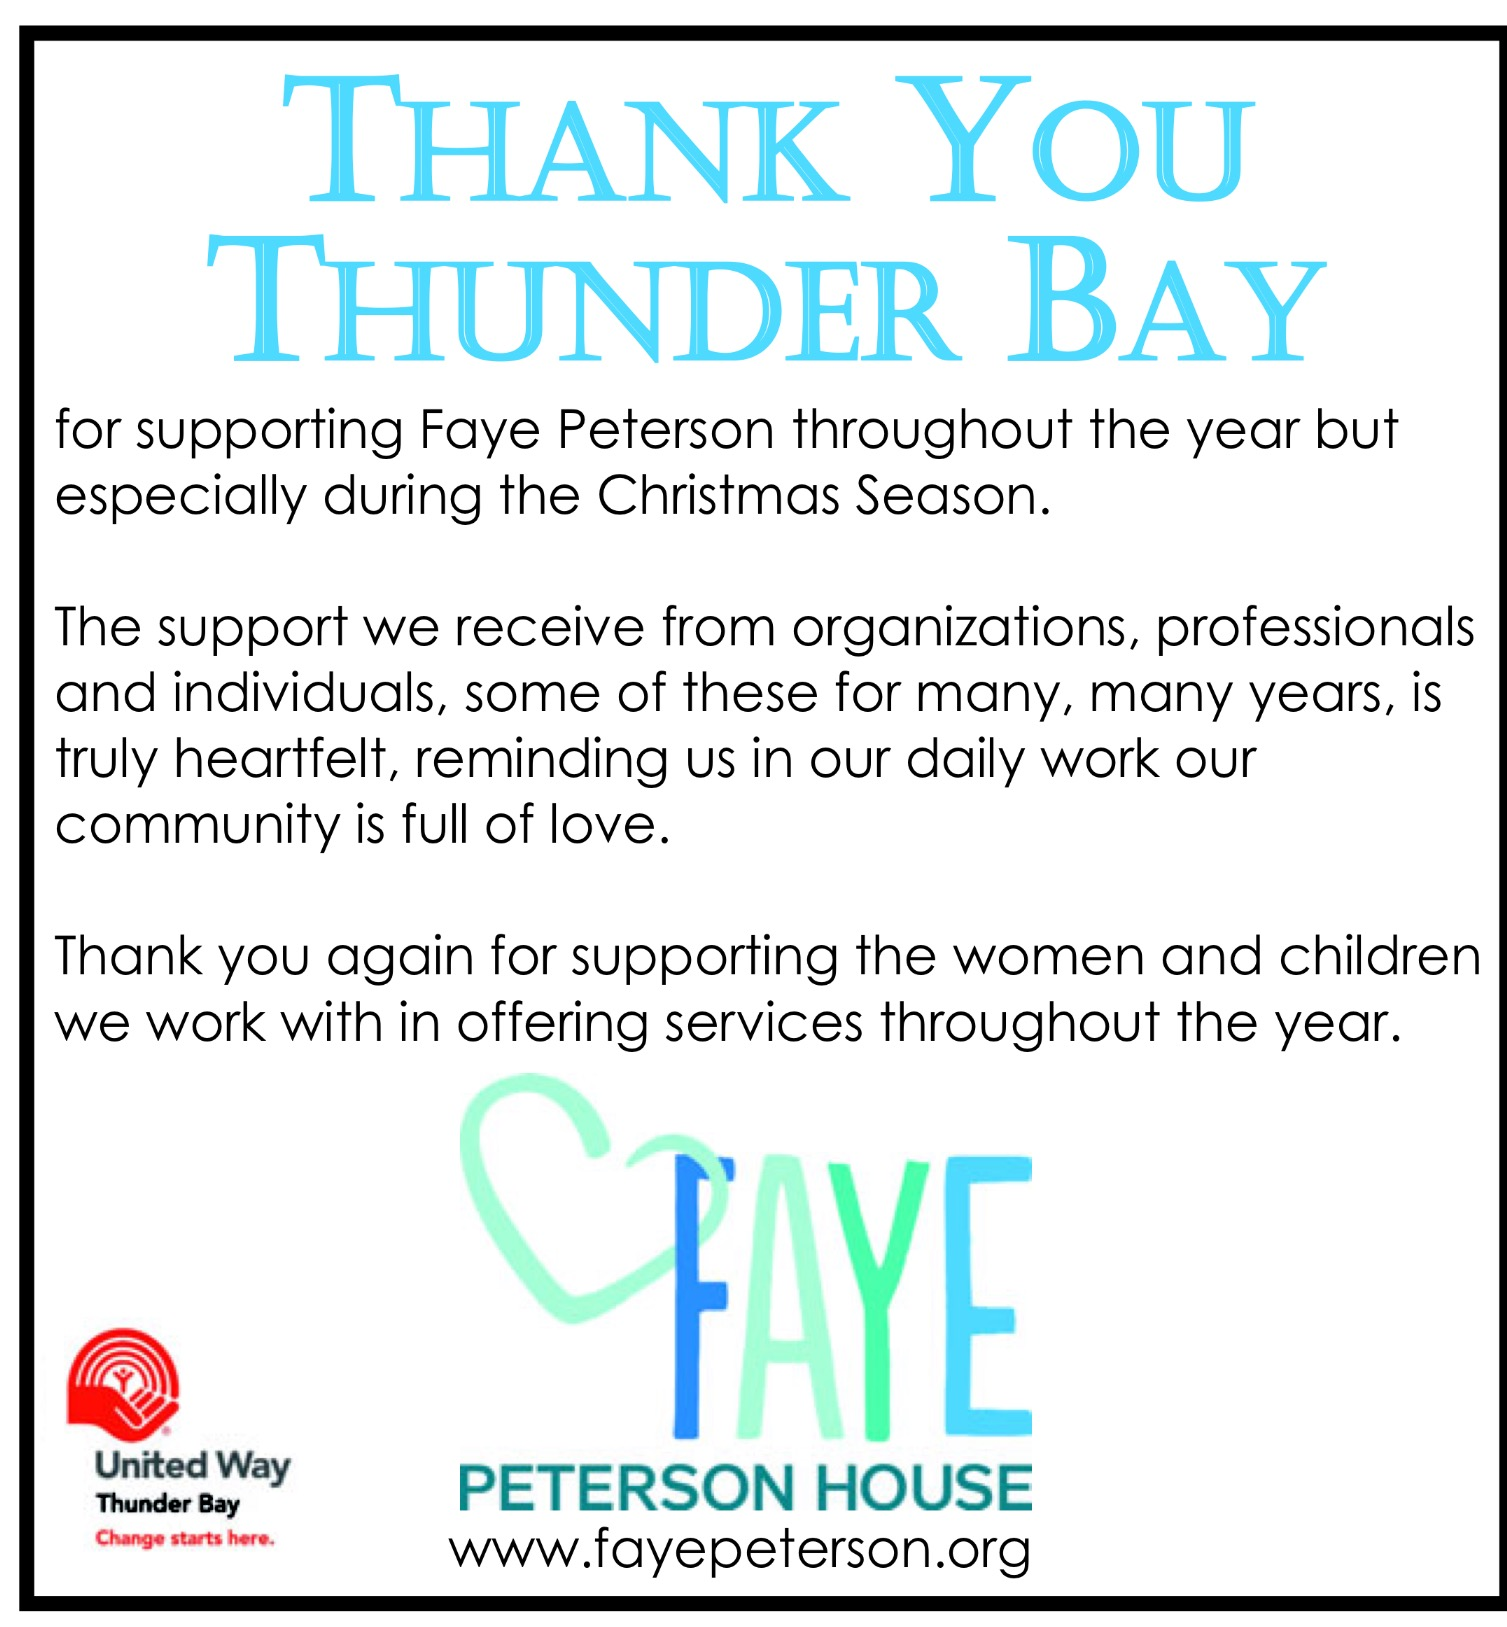 Thank you to Thunder Bay